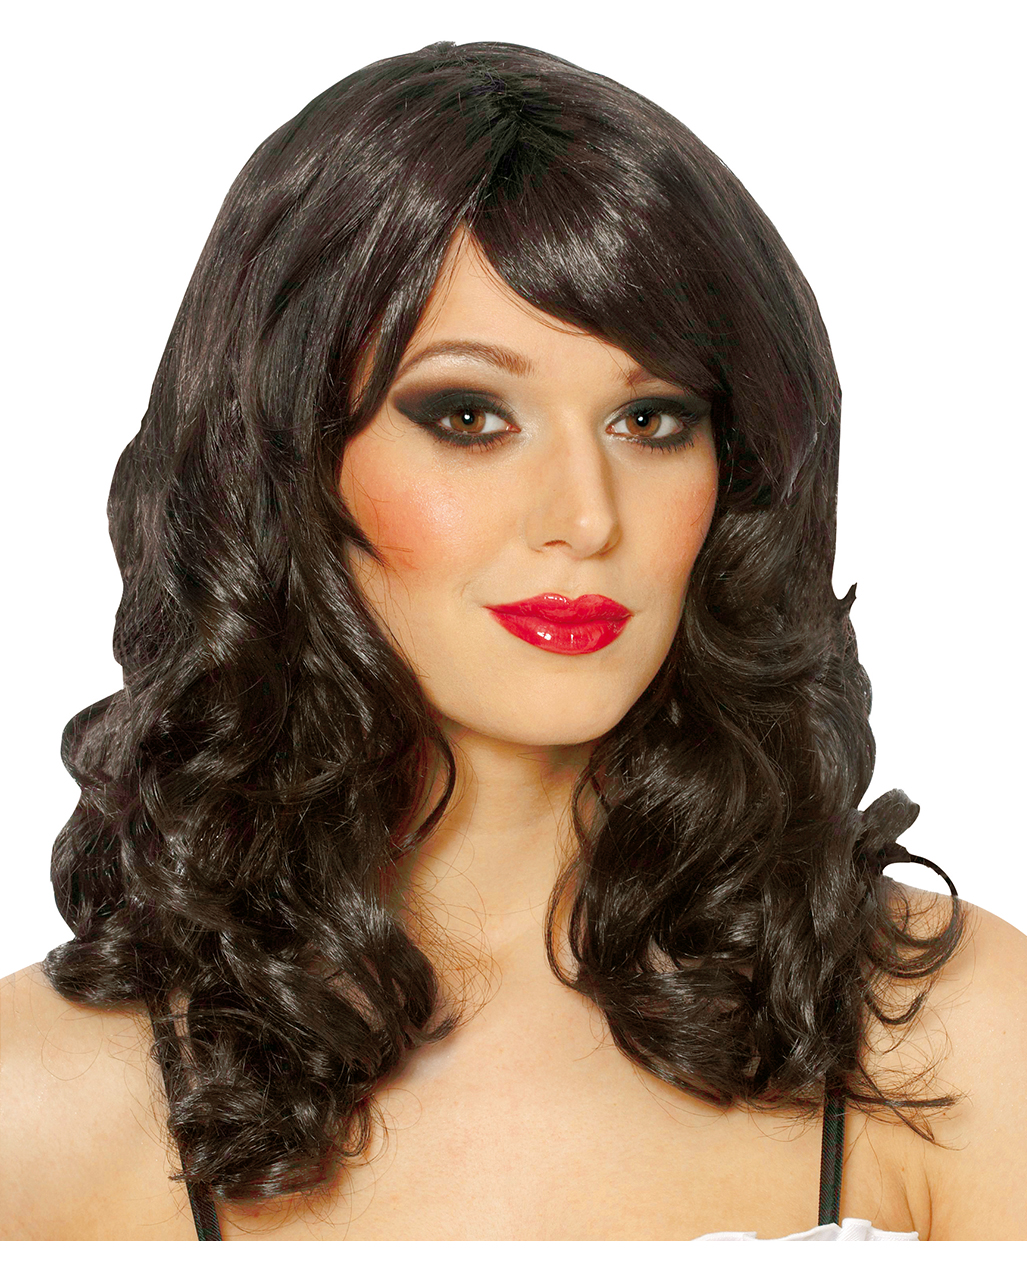 Curly Wig Eve Black -Black Long Hair Wig With Curls And